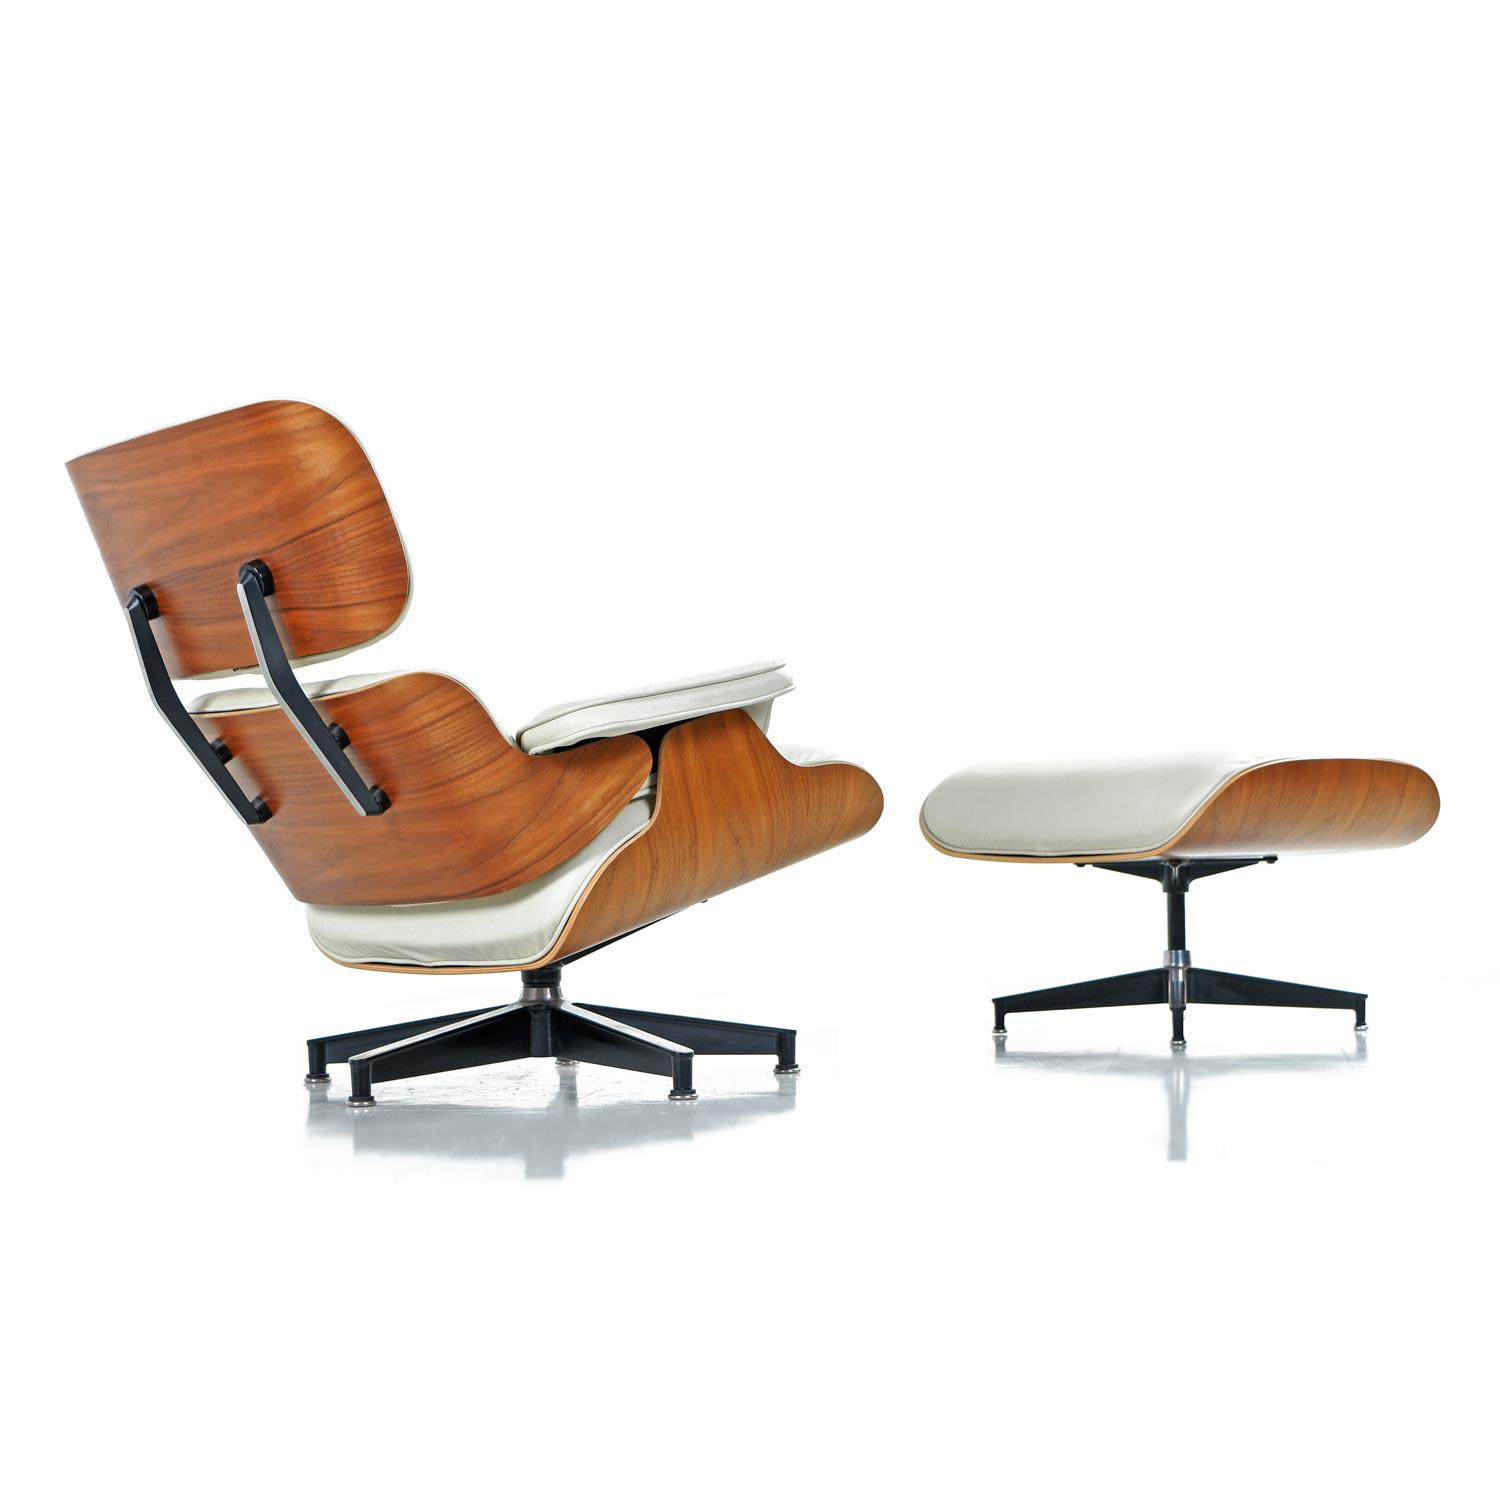 Superieur Iconic Mid Century Modern Herman Miller Eames Chair. Ivory Genuine Leather  With Walnut Shell